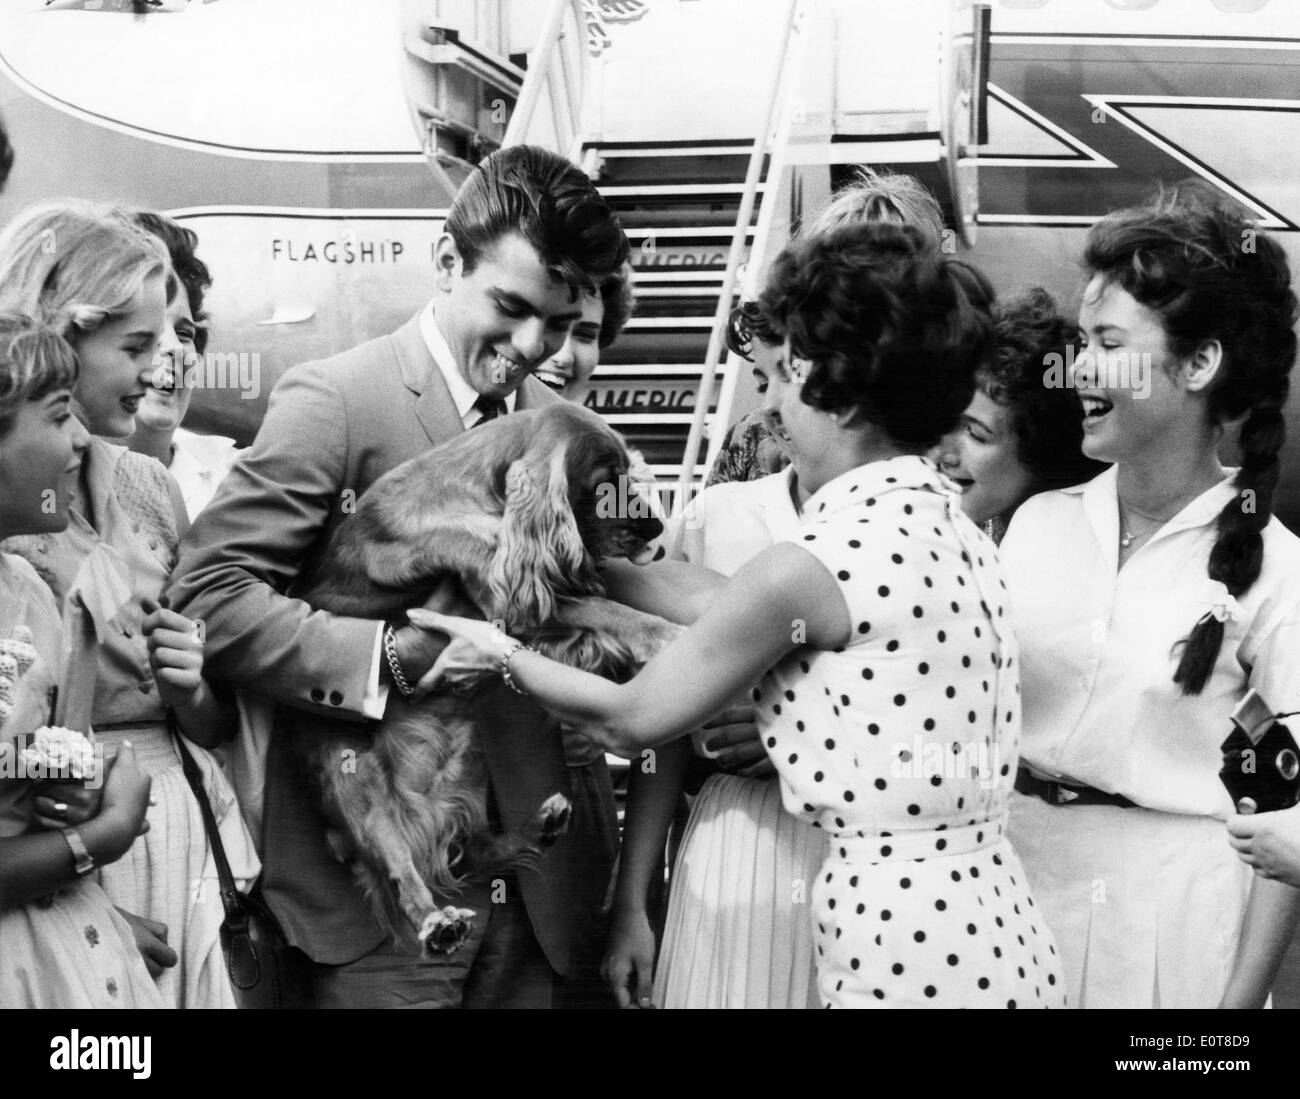 Fabian with his Dog, Sam, Being Greeted by Fans at Airport, New York City, USA, 1959 - Stock Image